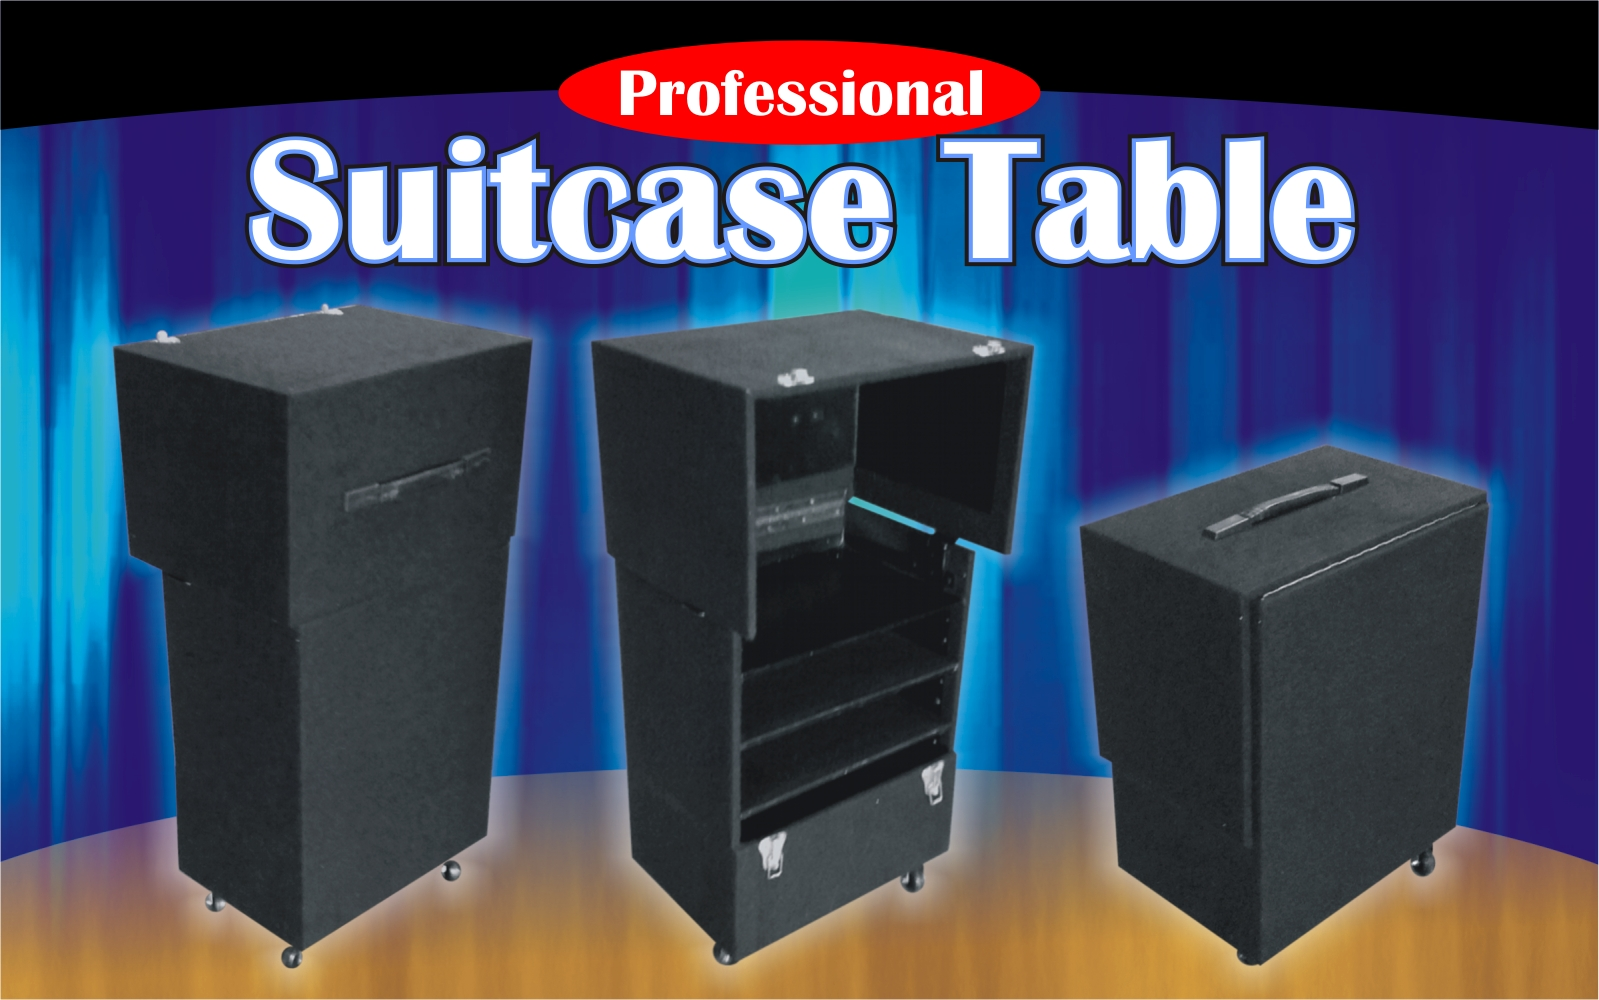 Suitcase Table - Pro